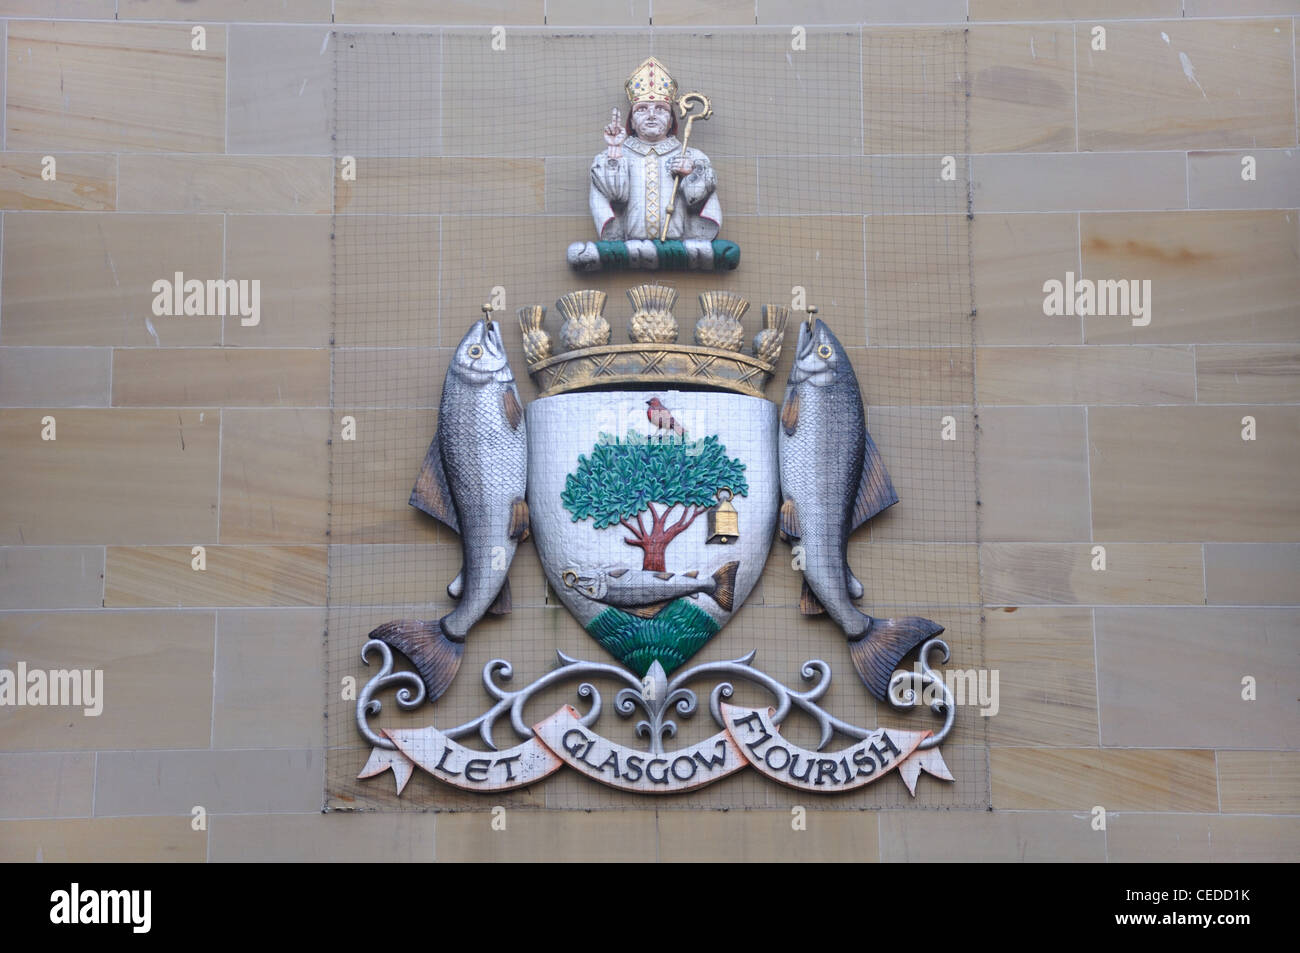 The Glasgow coat of arms, 'Let Glasgow Flourish' on the wall of the Royal Glasgow Concert Hall - Stock Image